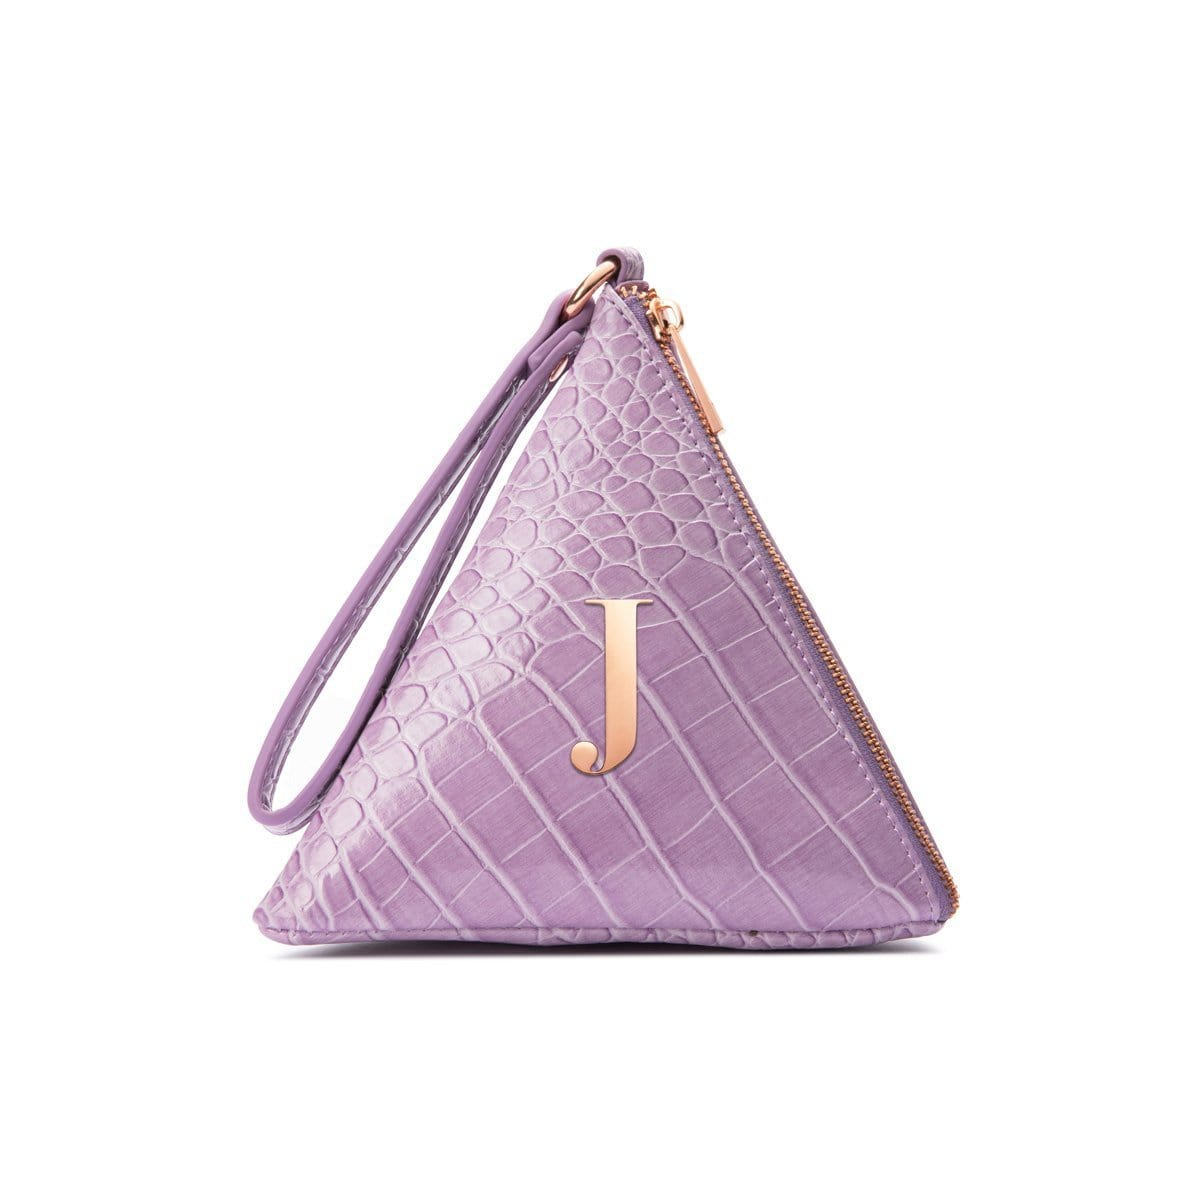 Lilly Pyramid Clutch Bag (Lilac/Rose Gold)